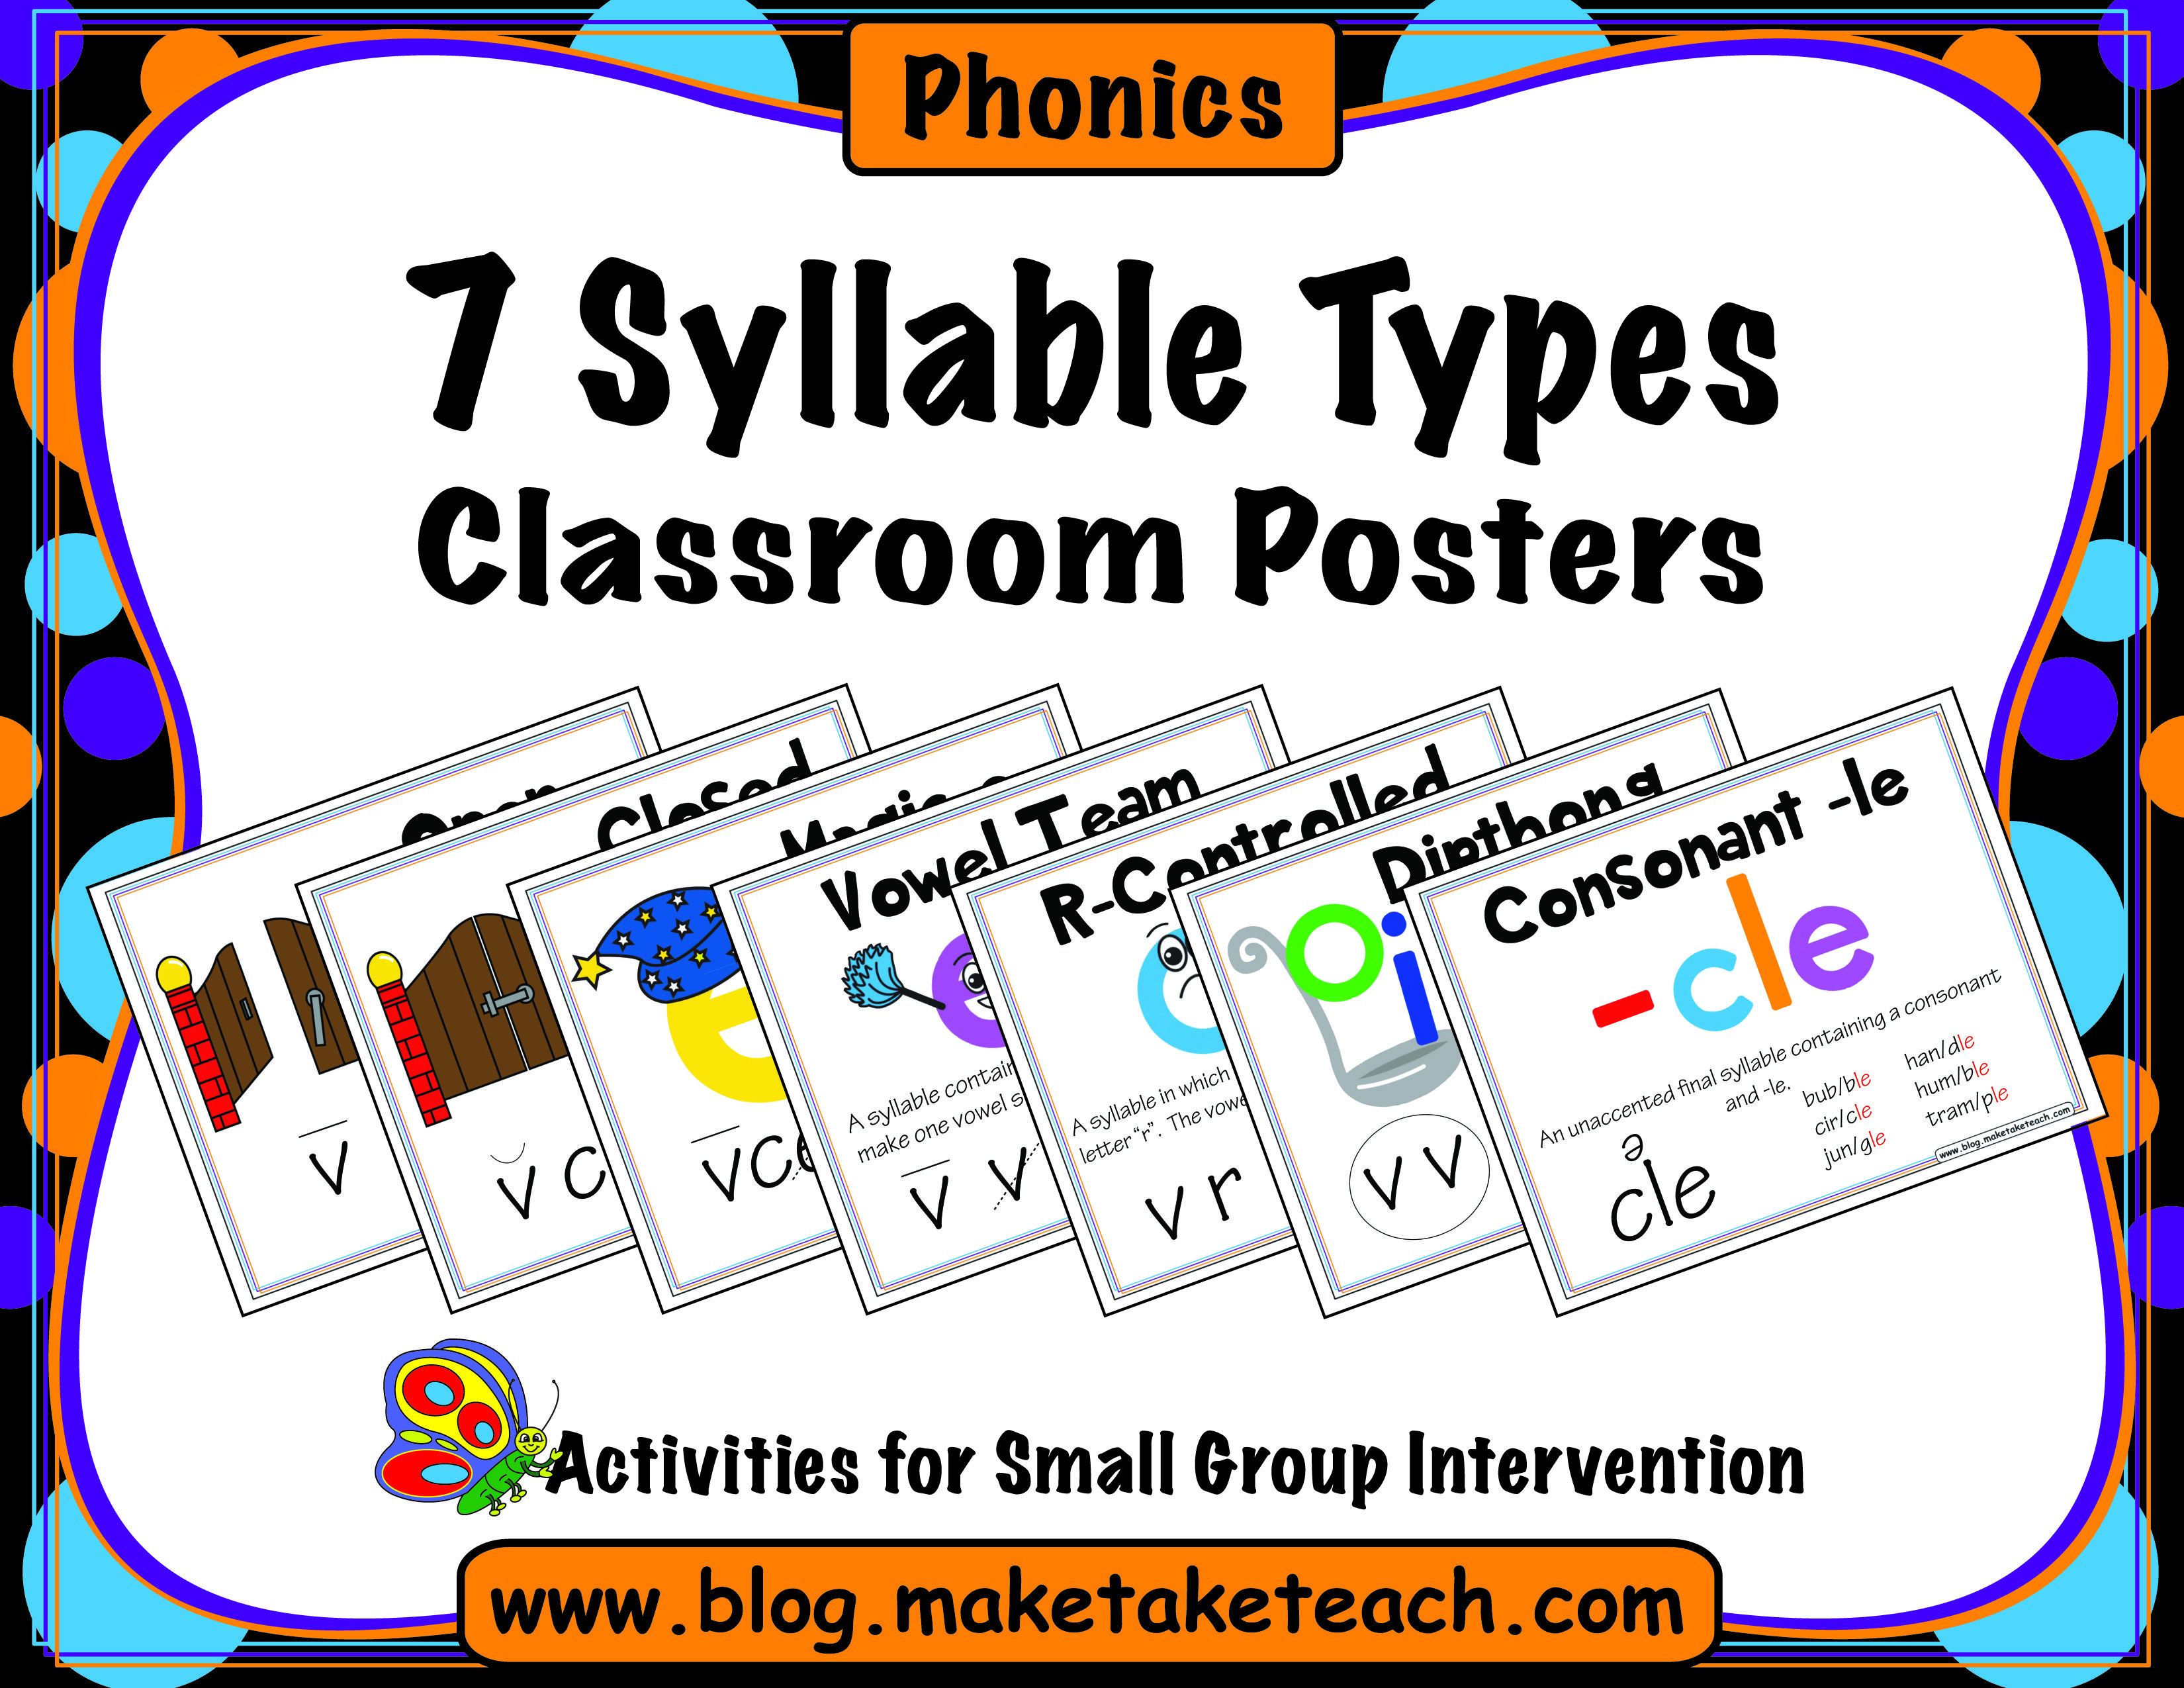 Syllable patterns vccv worksheet education com - 7 Syllable Types Classroom Posters Make Take Teach